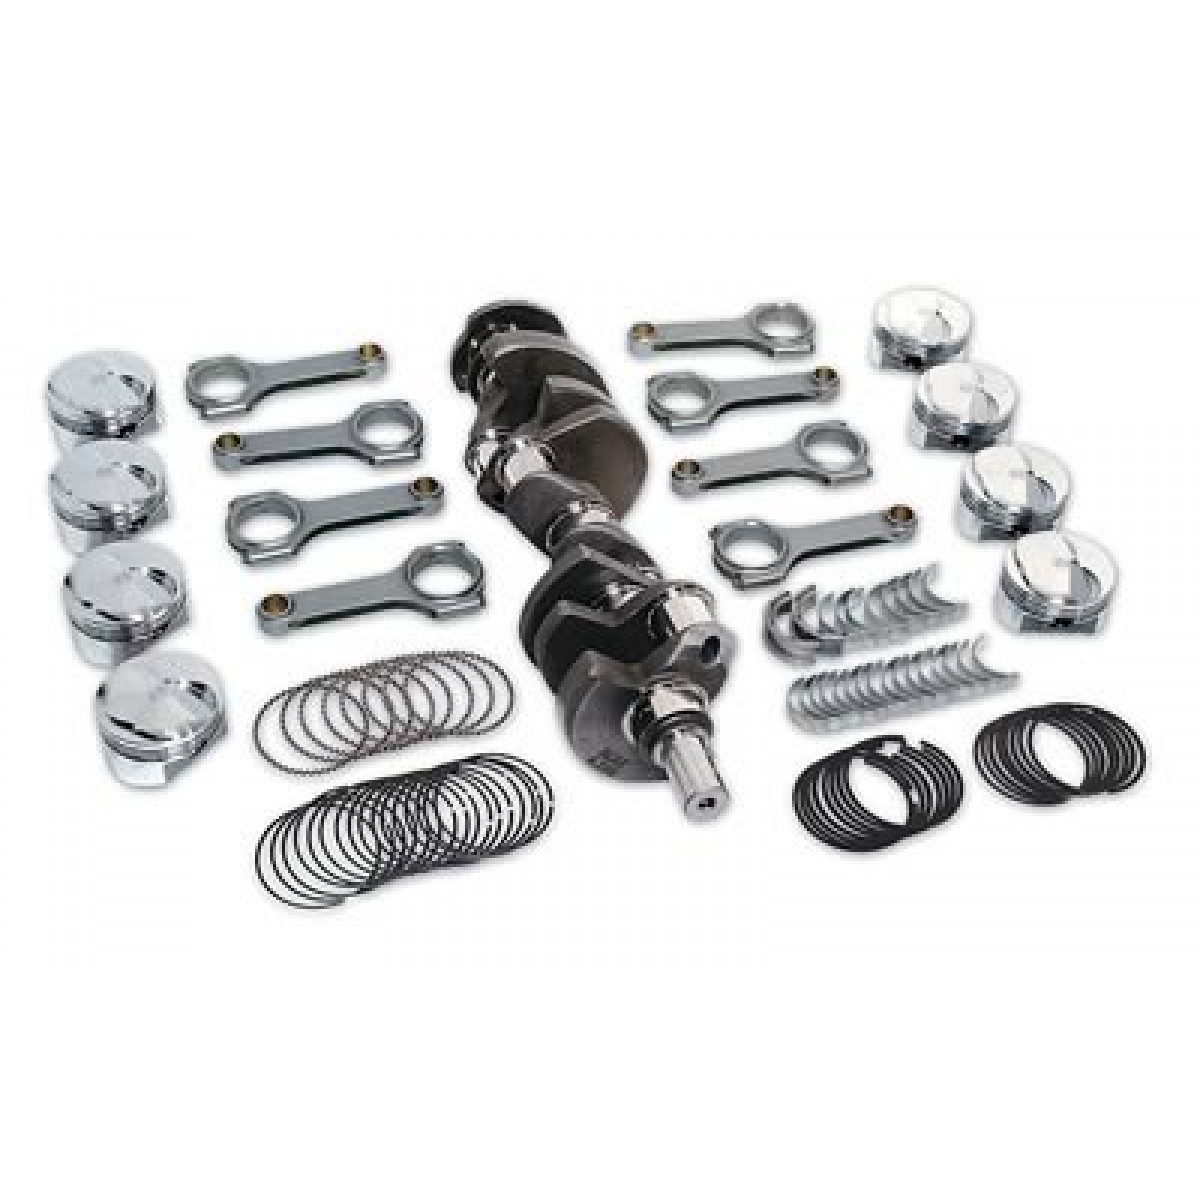 FORD 460 To 520 SCAT FORGED Stroker Kit FREE SHIPPING U.S